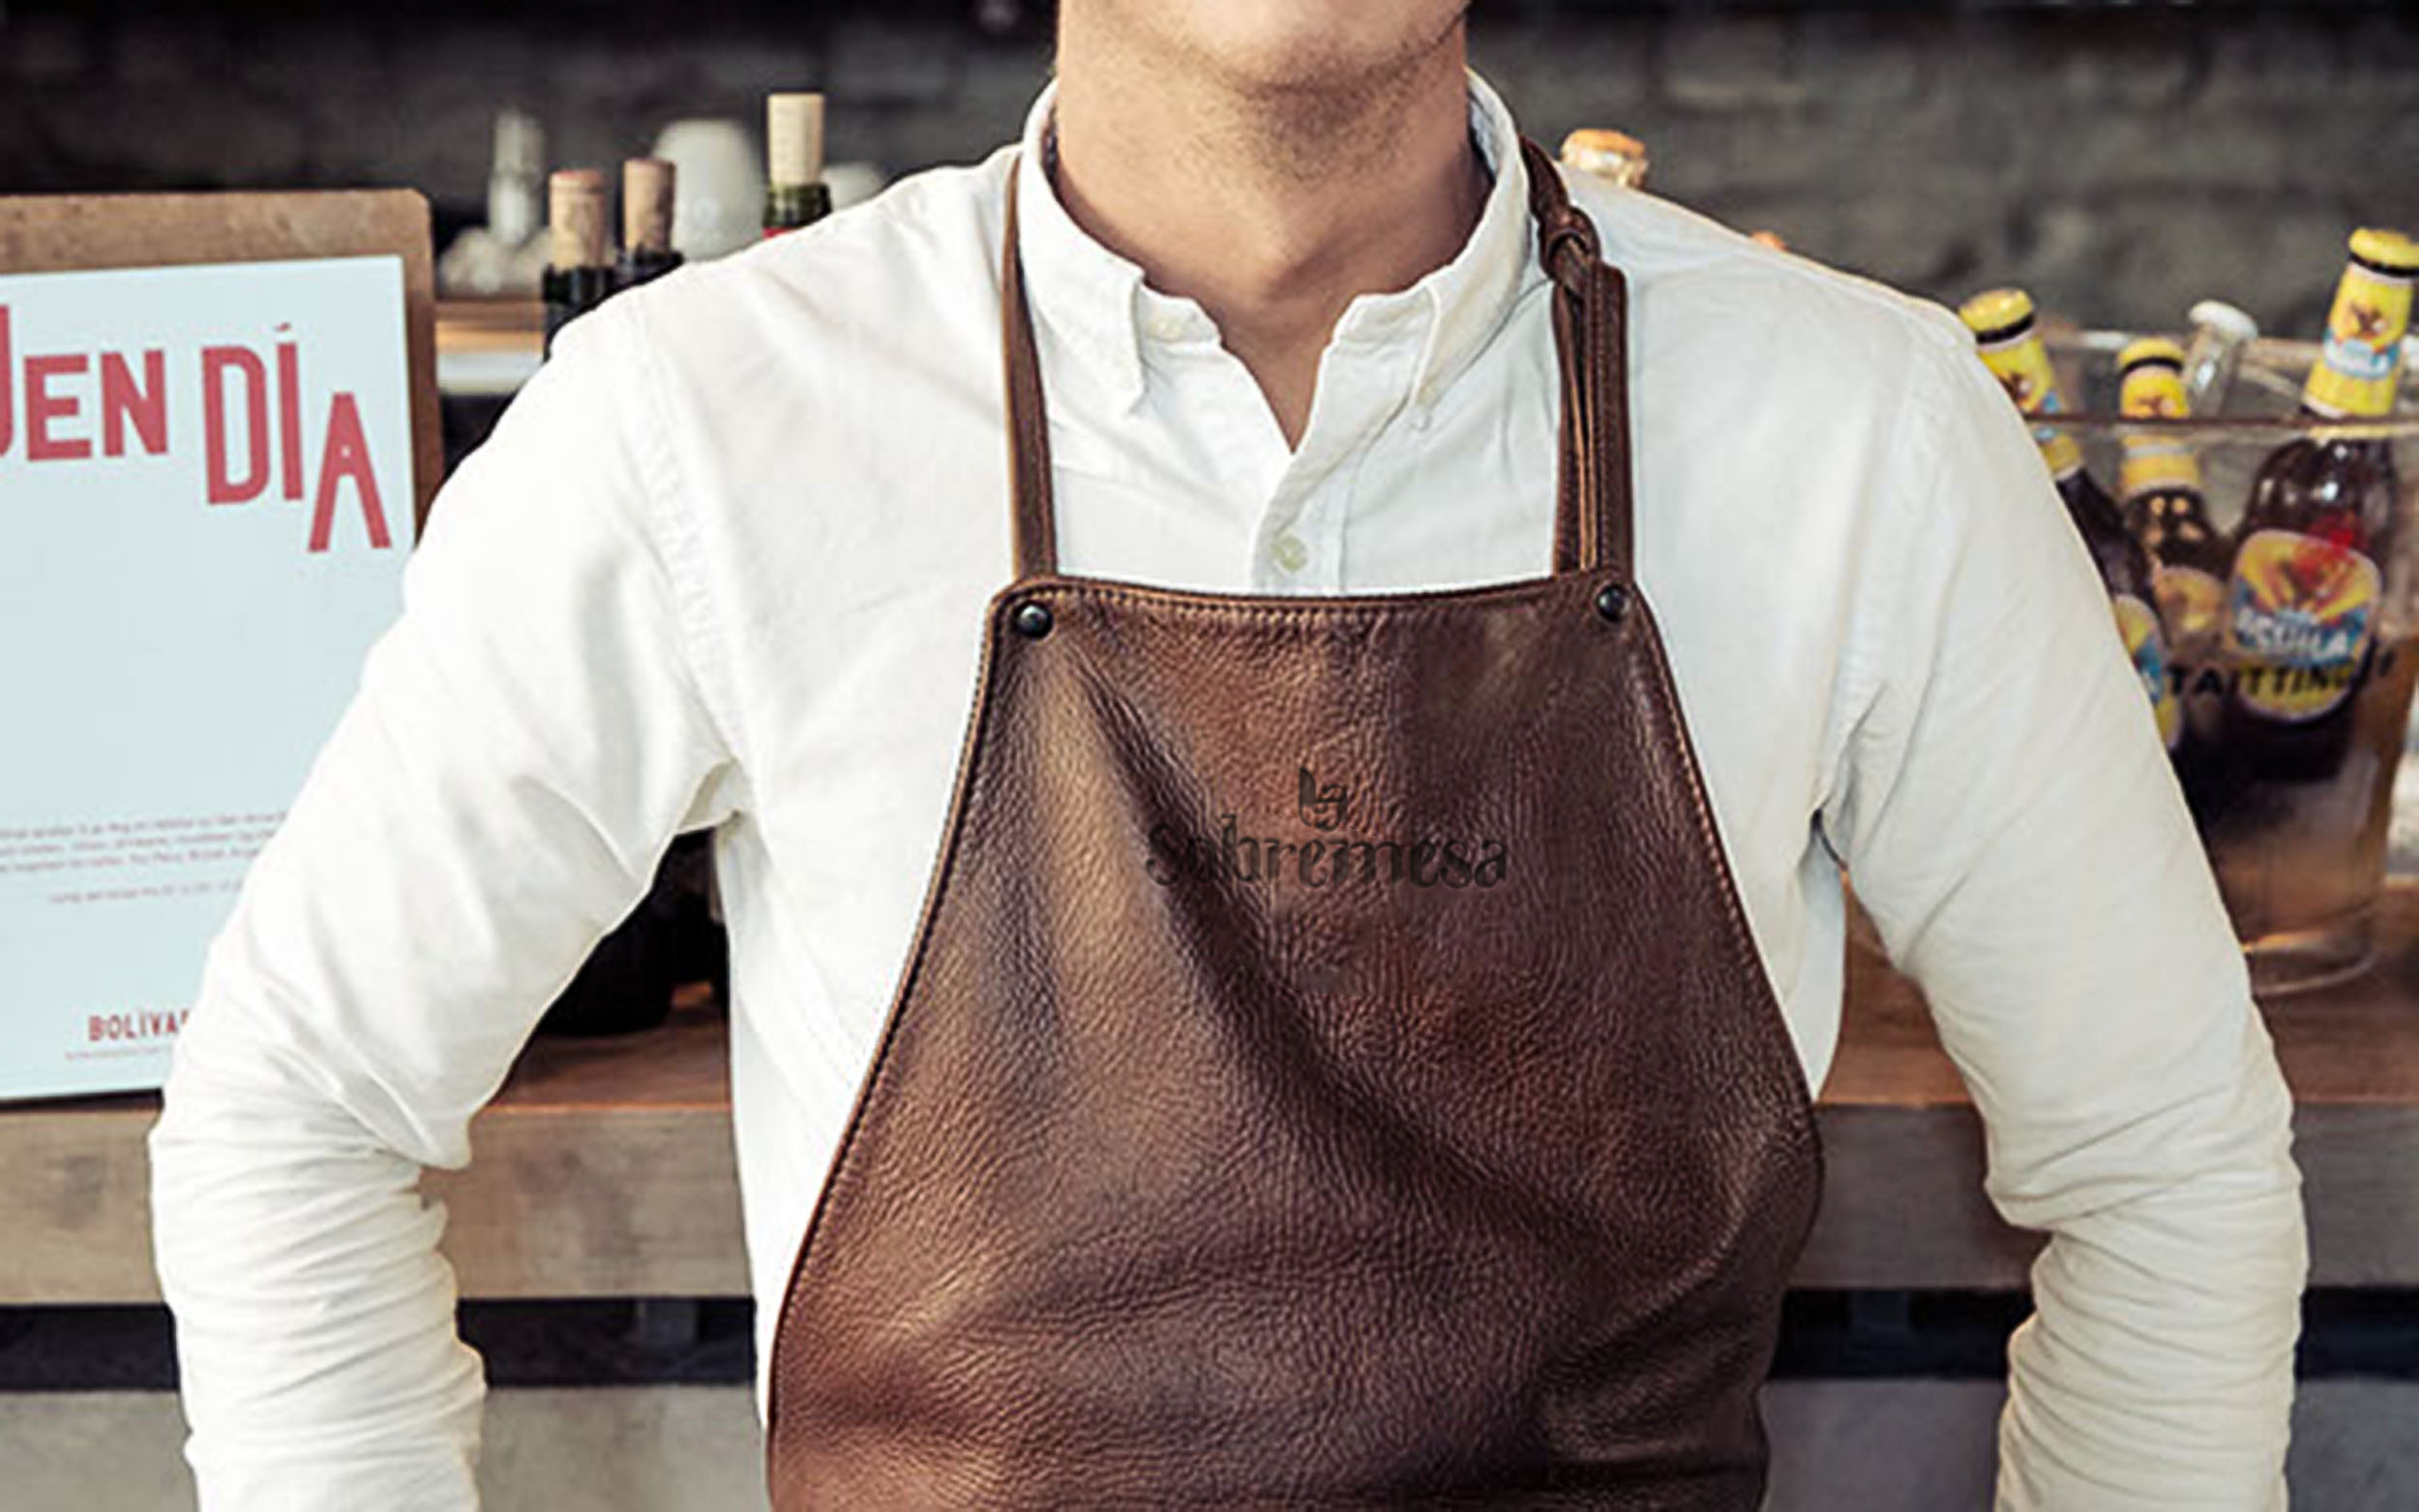 A man wears an apron with the watermark of La Sobremesa